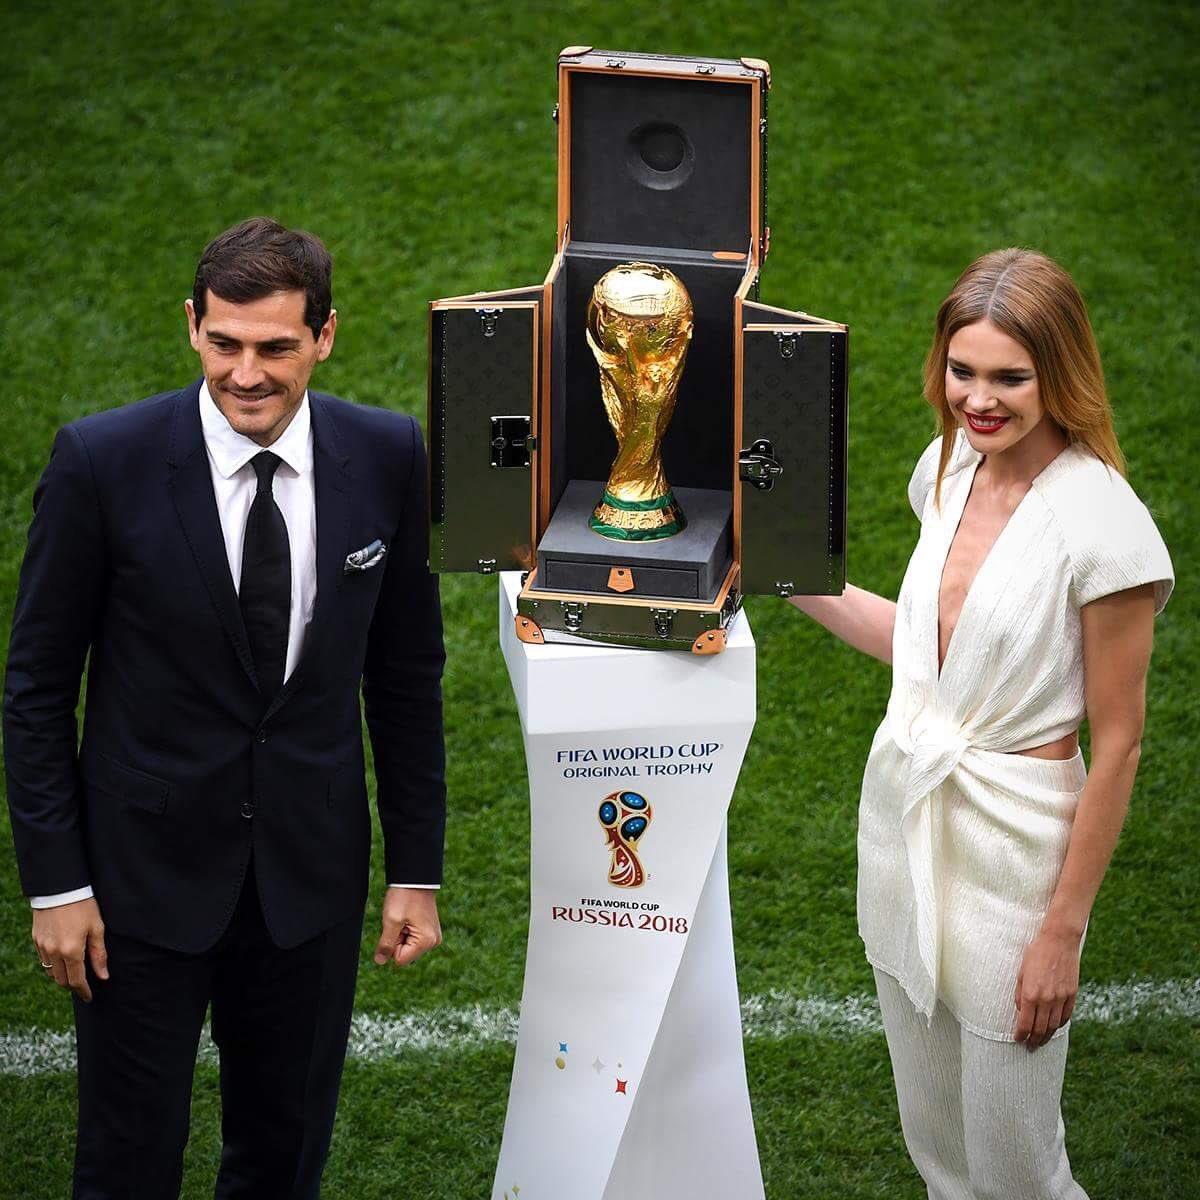 World Cup 2018 Trophy Unveiled [Photos]